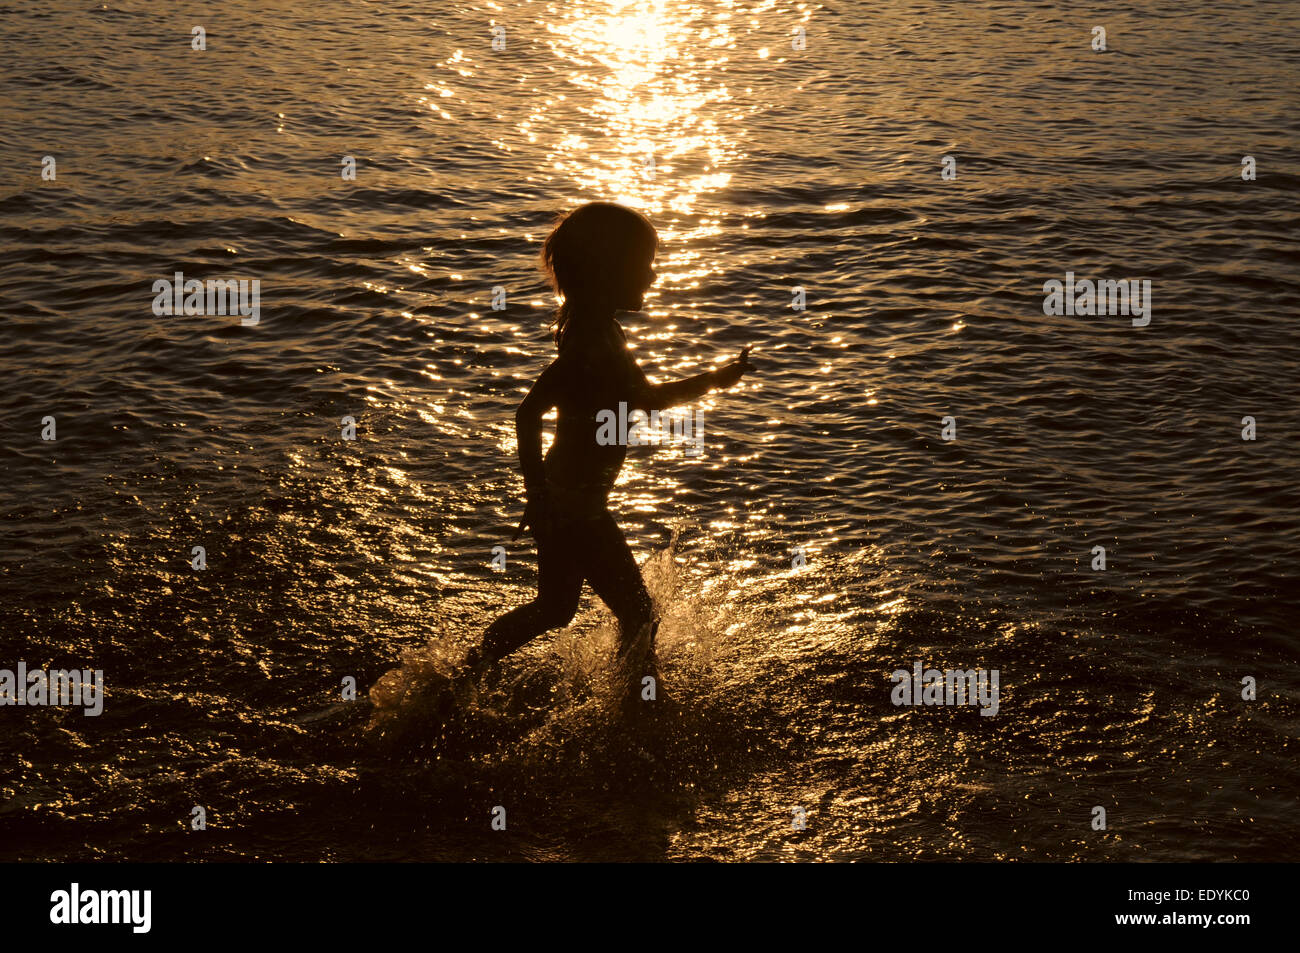 Little girl is running on the shallow.Only girl's silhouette against the background of sunset is seen. - Stock Image